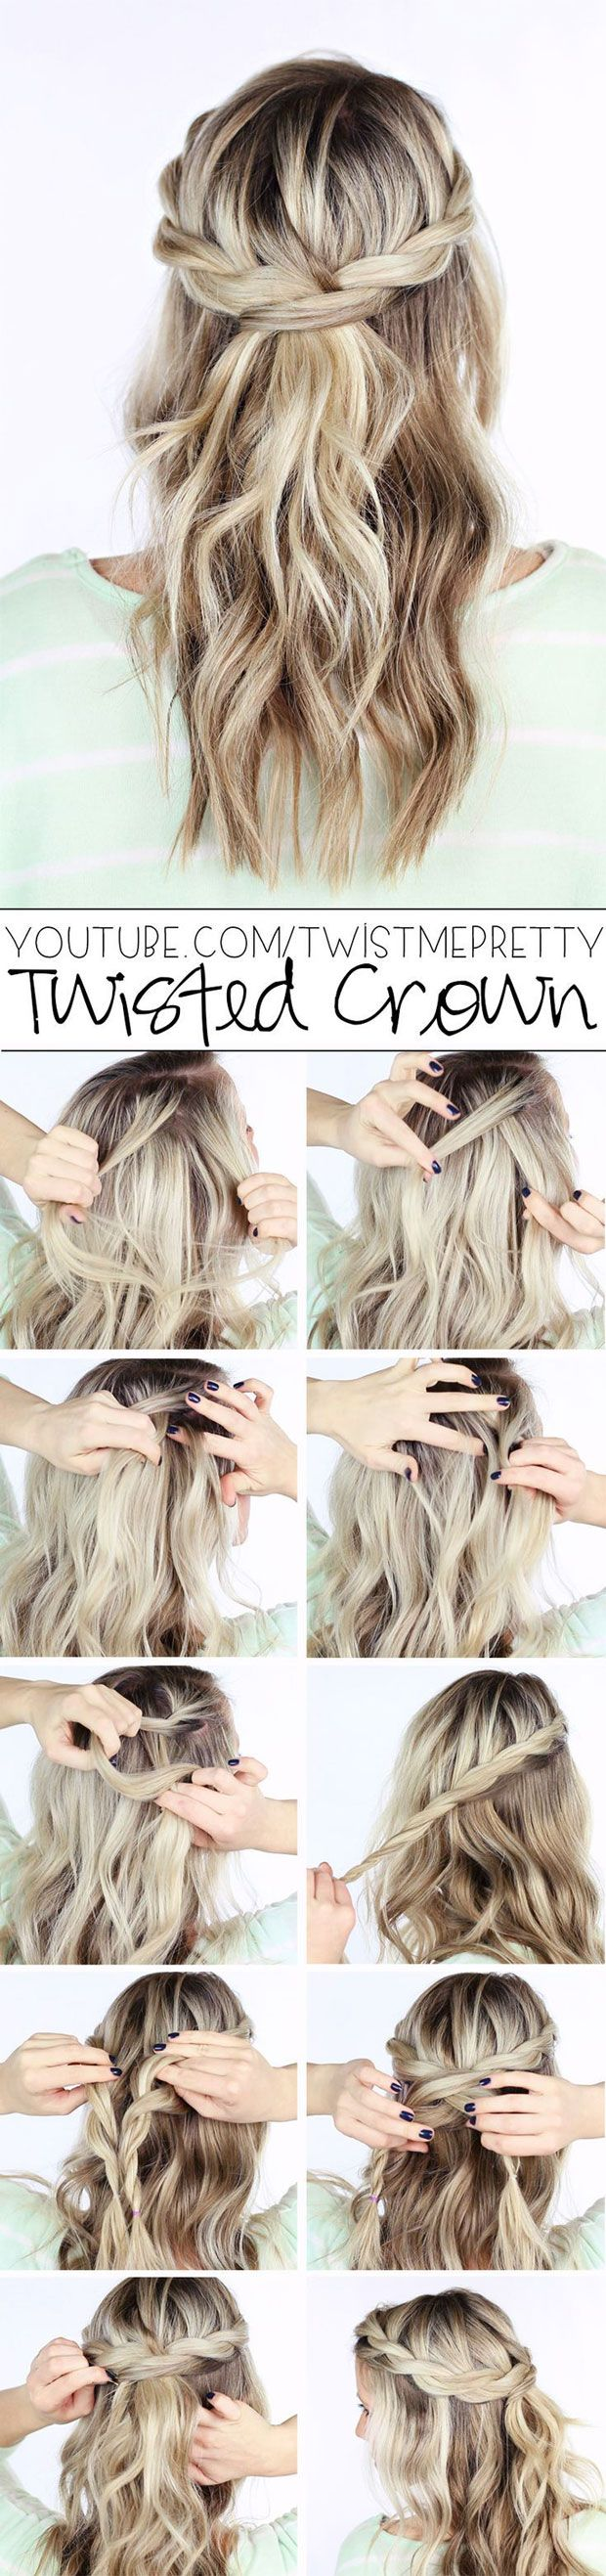 Best Hair Tutorials Ideas On Pinterest Braids For Long Hair - Braid diy pinterest